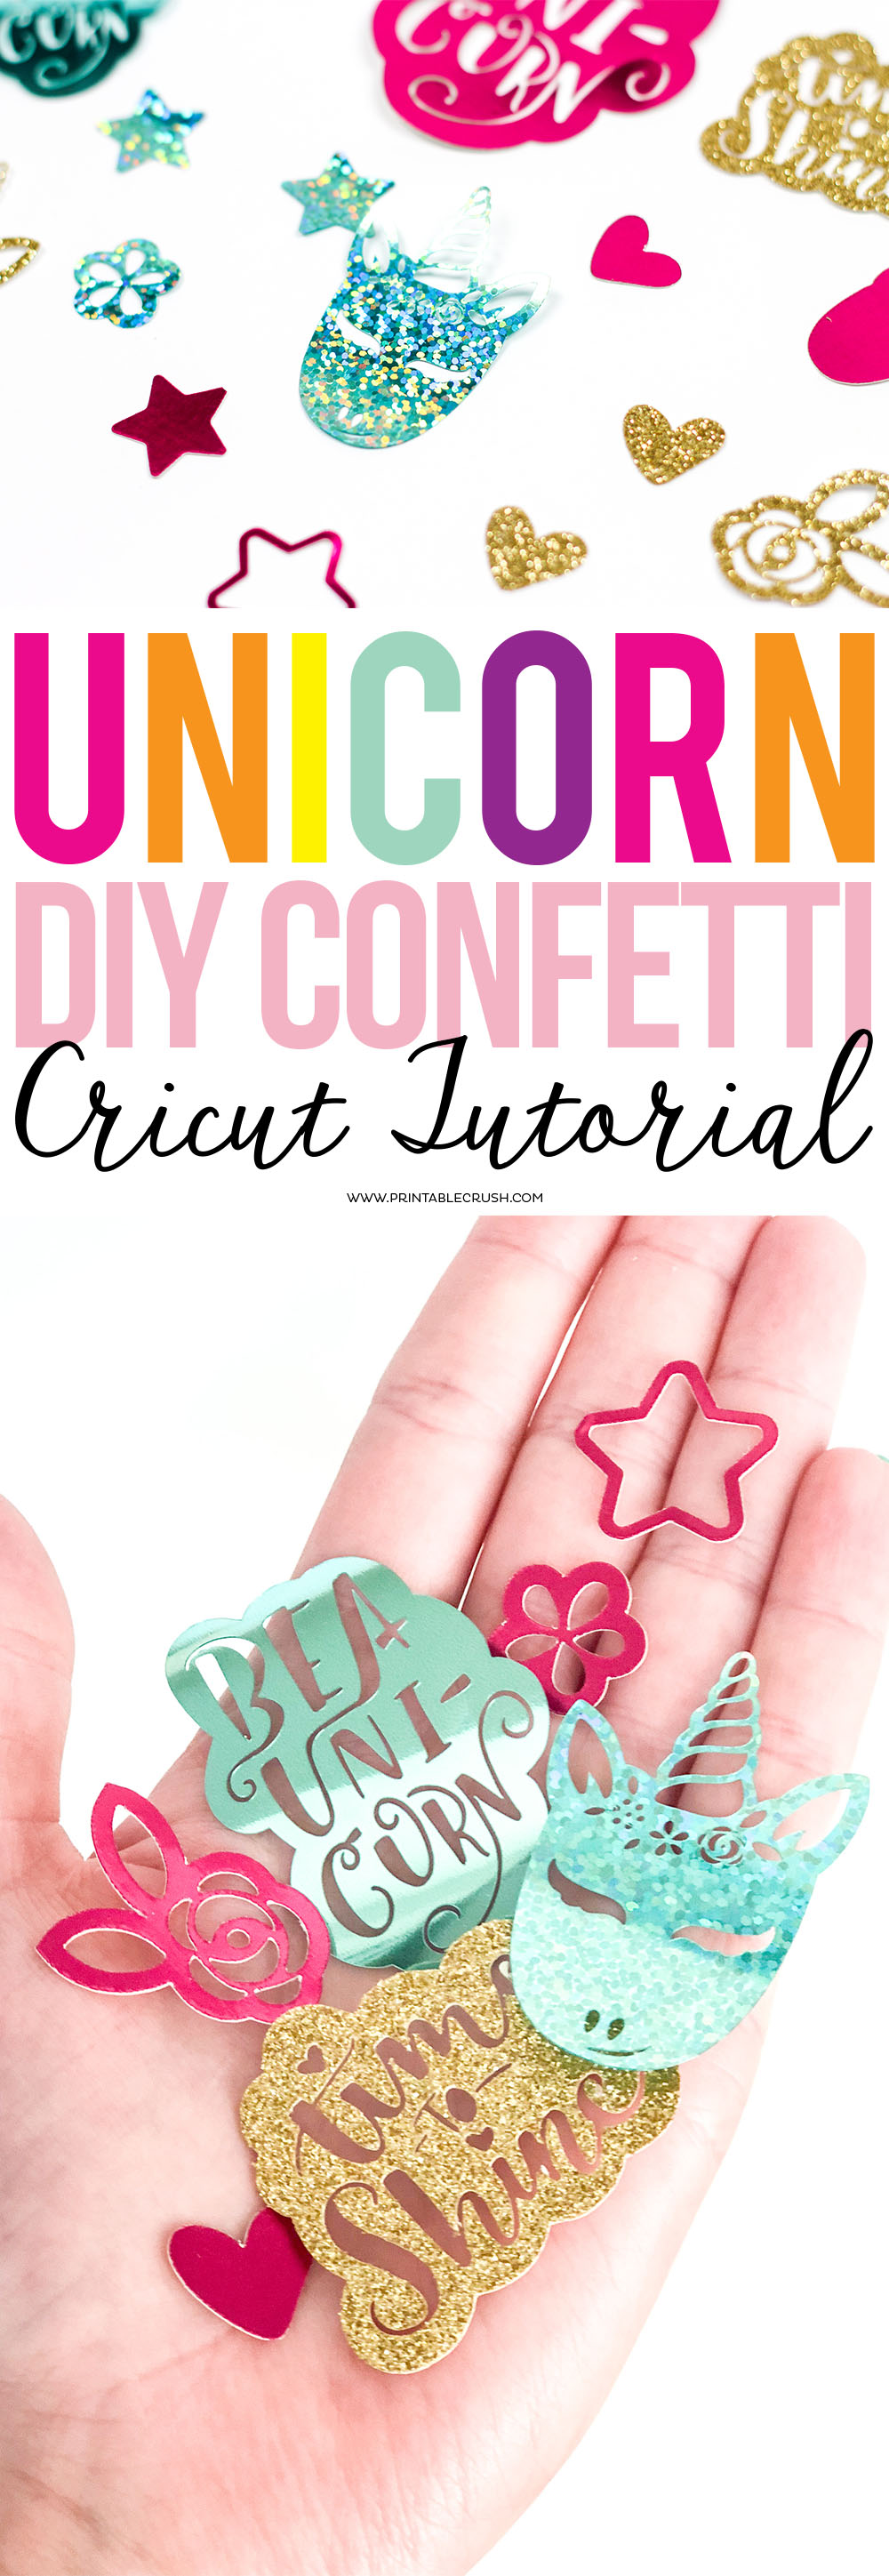 This fun Unicorn DIY Confetti Cricut Tutorial is super easy, and you will be amazed at how intricate the Maker can cut on the Cricut party foil! #DIYconfetti #partydecor #partydecorations #unicornparty #unicornsvgfiles #svgfiles #unicorncutfiles via @printablecrush